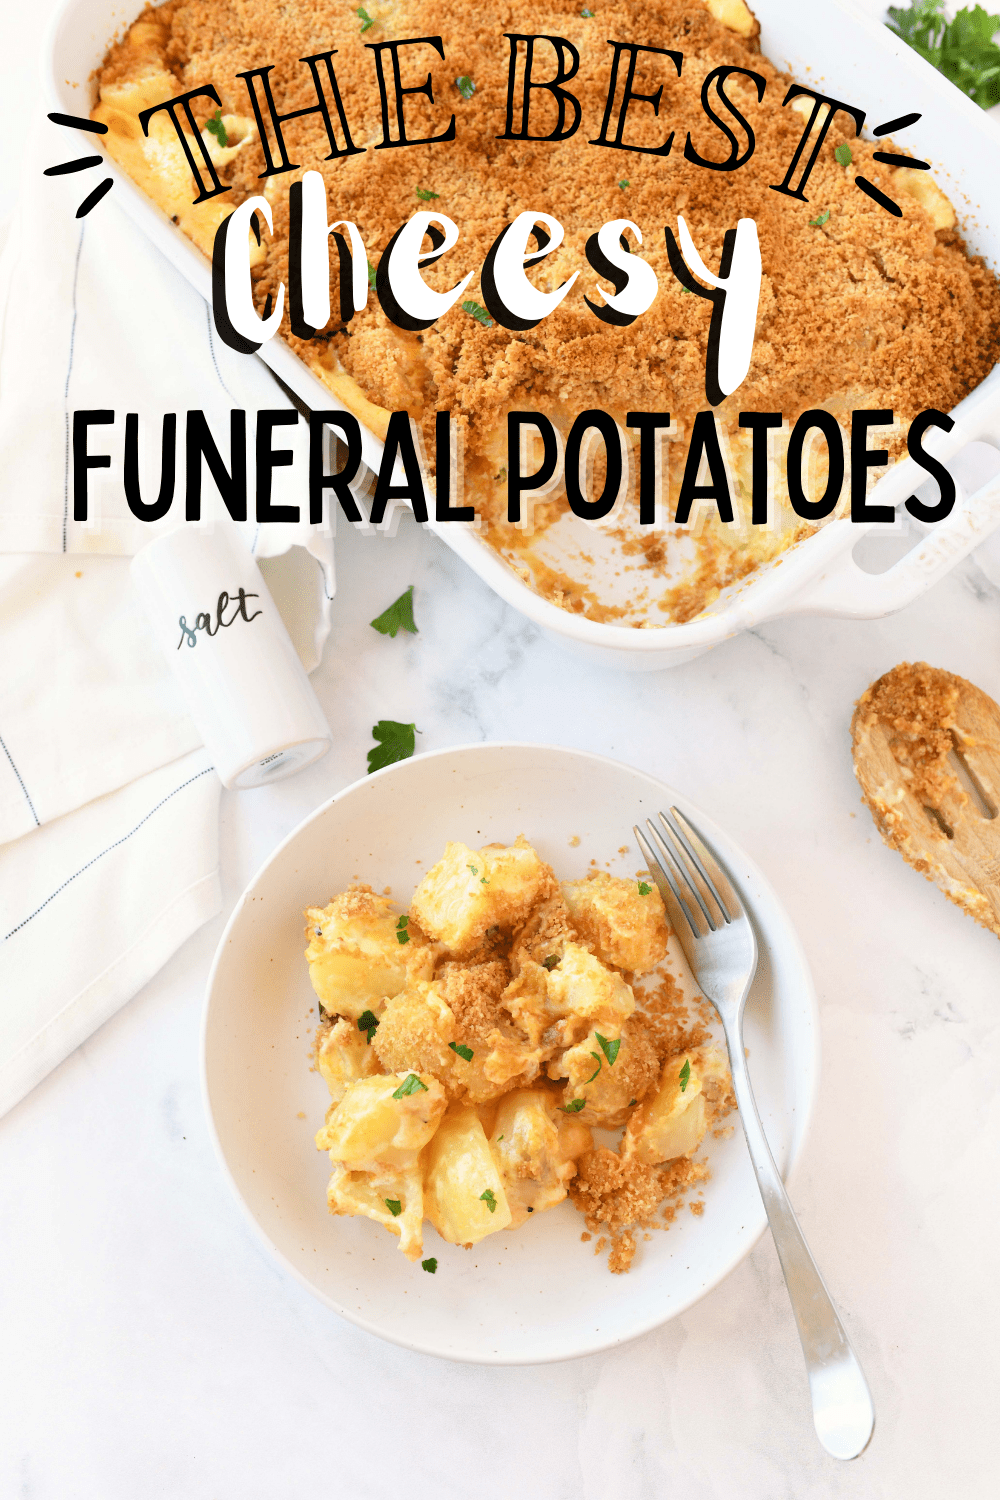 Funeral Potatoes with Ritz Cracker Topping